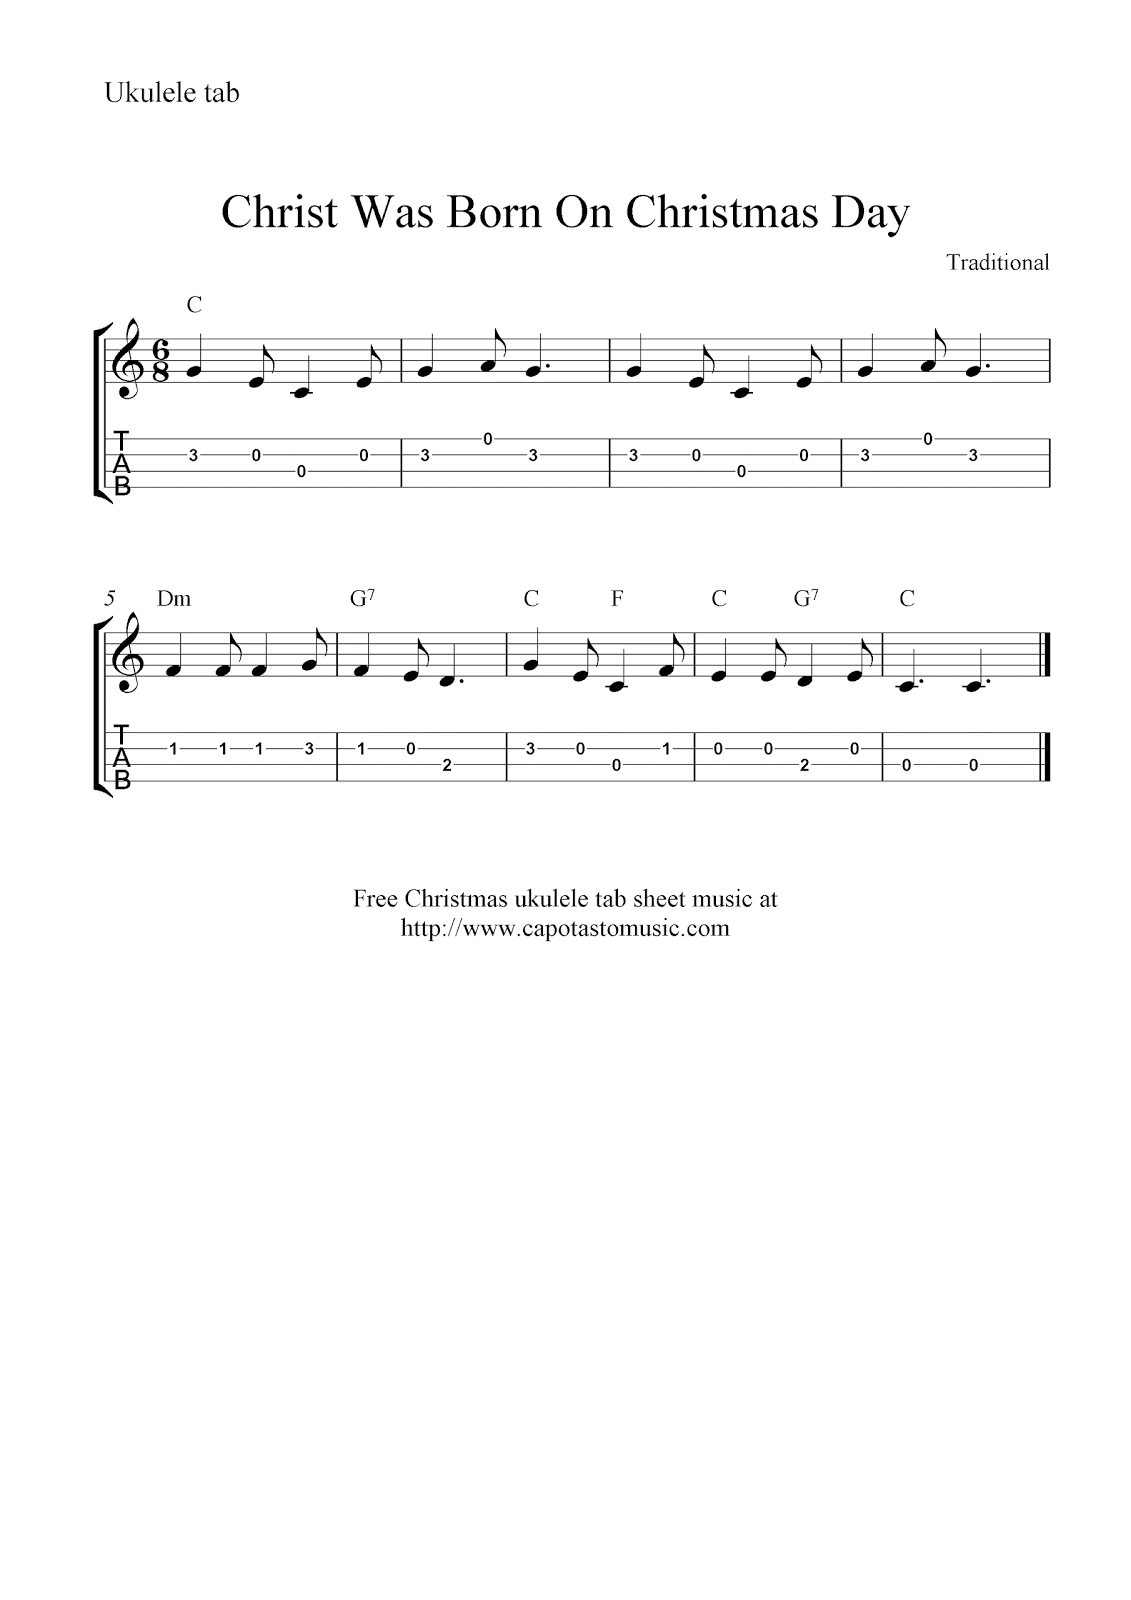 Was born on christmas day free christmas ukulele tabs sheet music